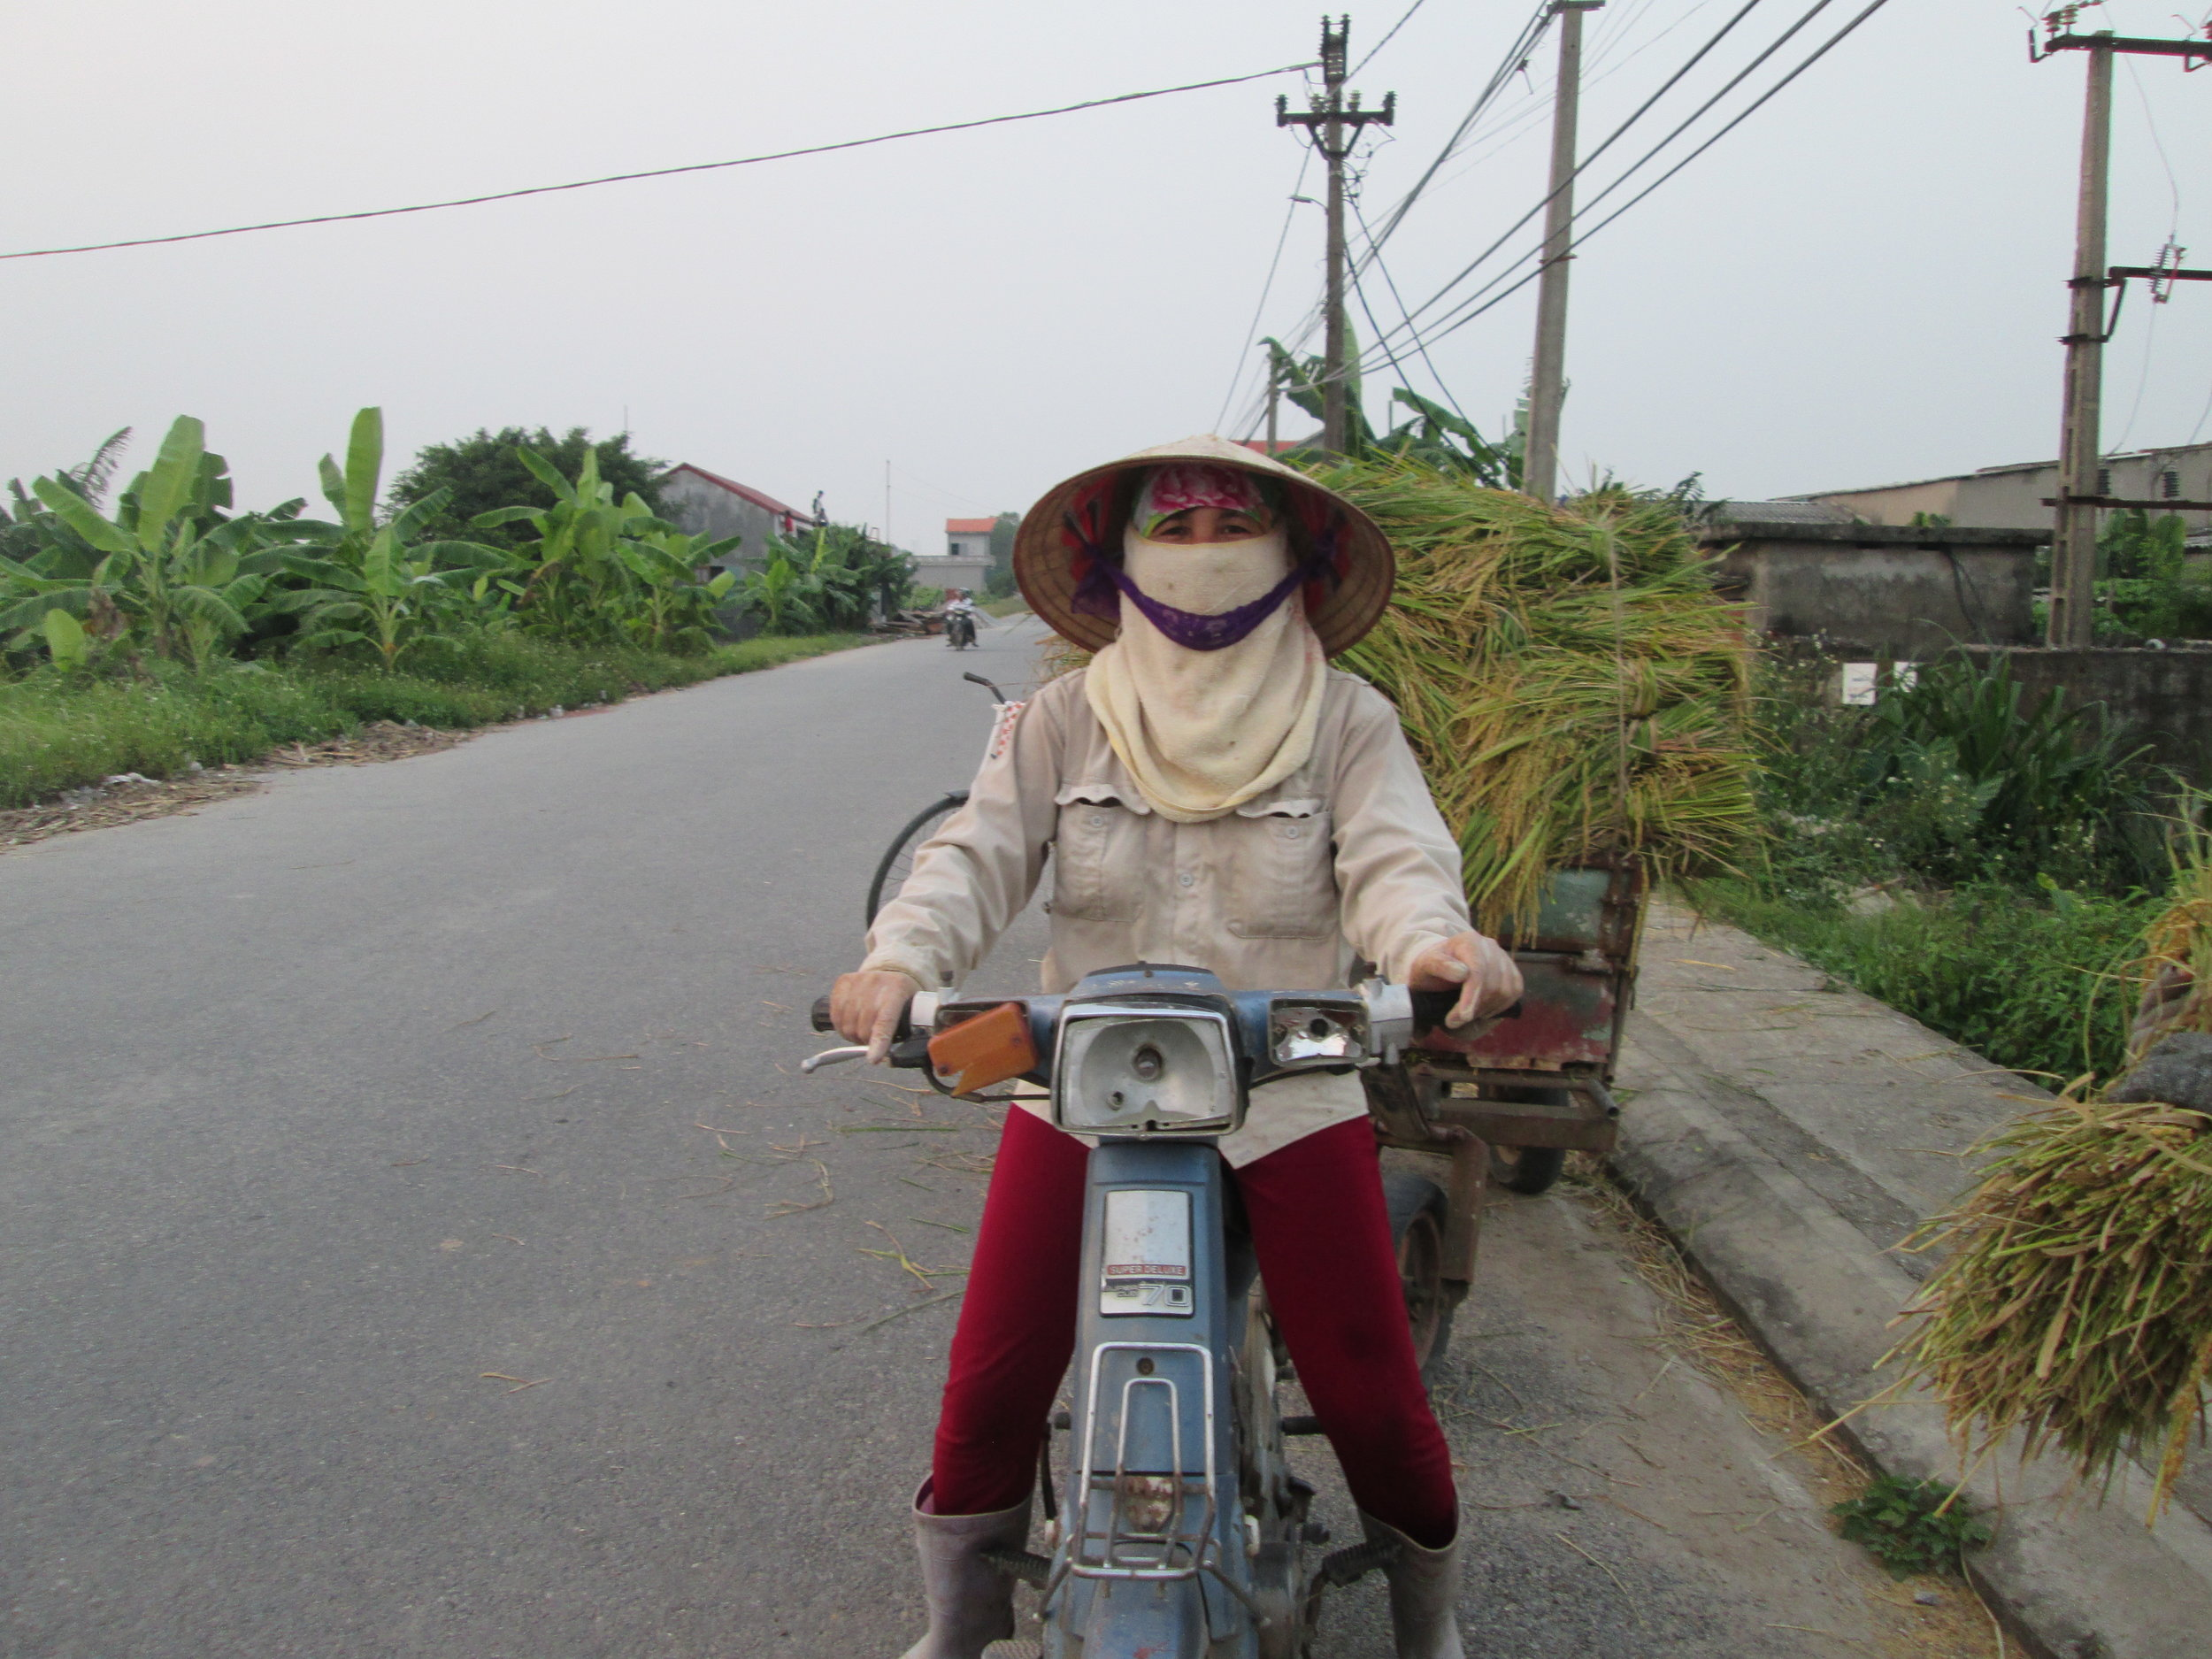 Hien Tran transporting rice straw for Fargreen